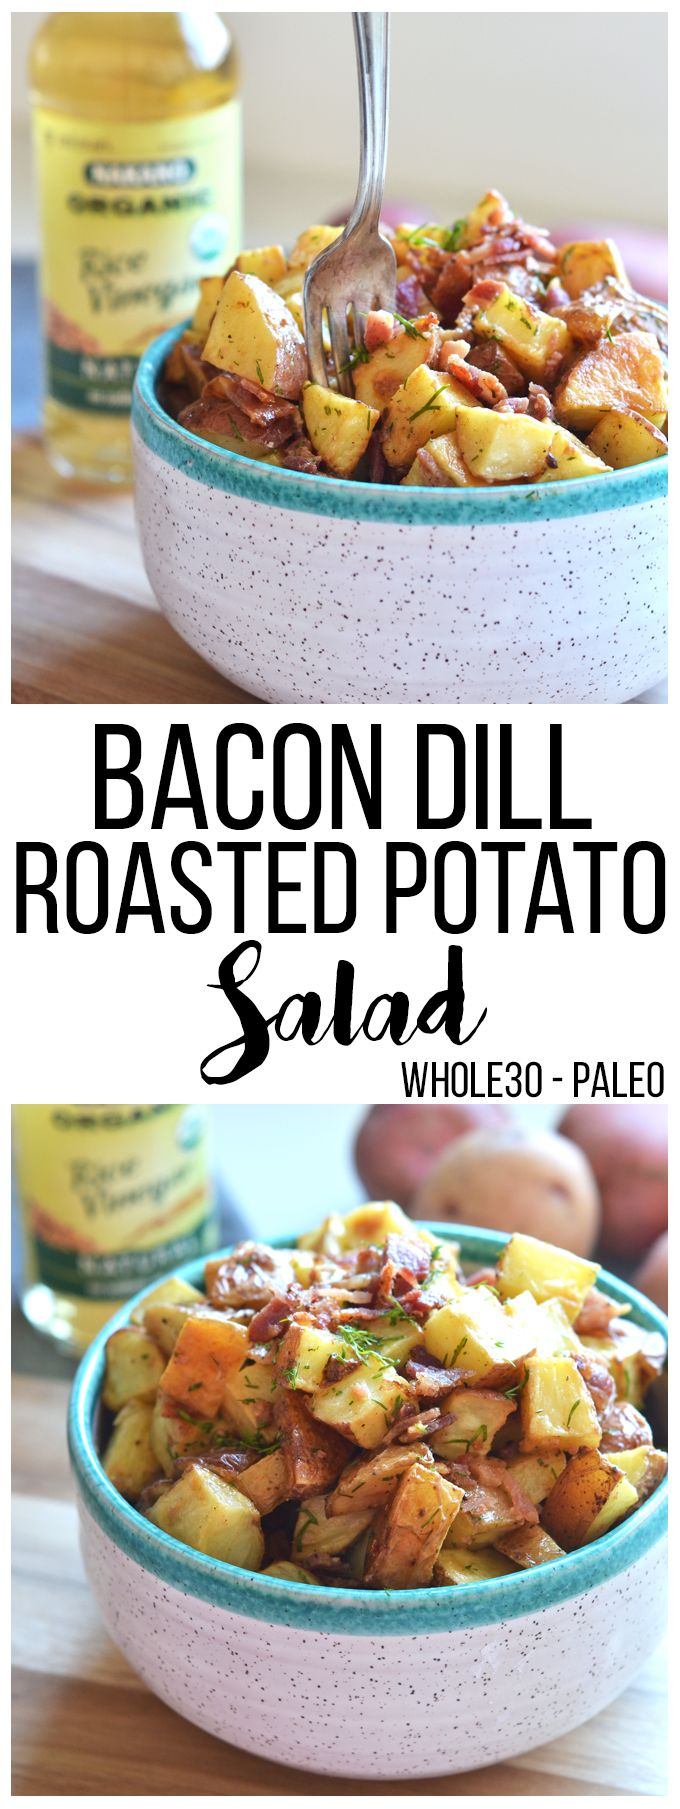 #ad This Bacon Dill Roasted Potato Salad is the perfect paleo and Whole30 side dish for a summer party!